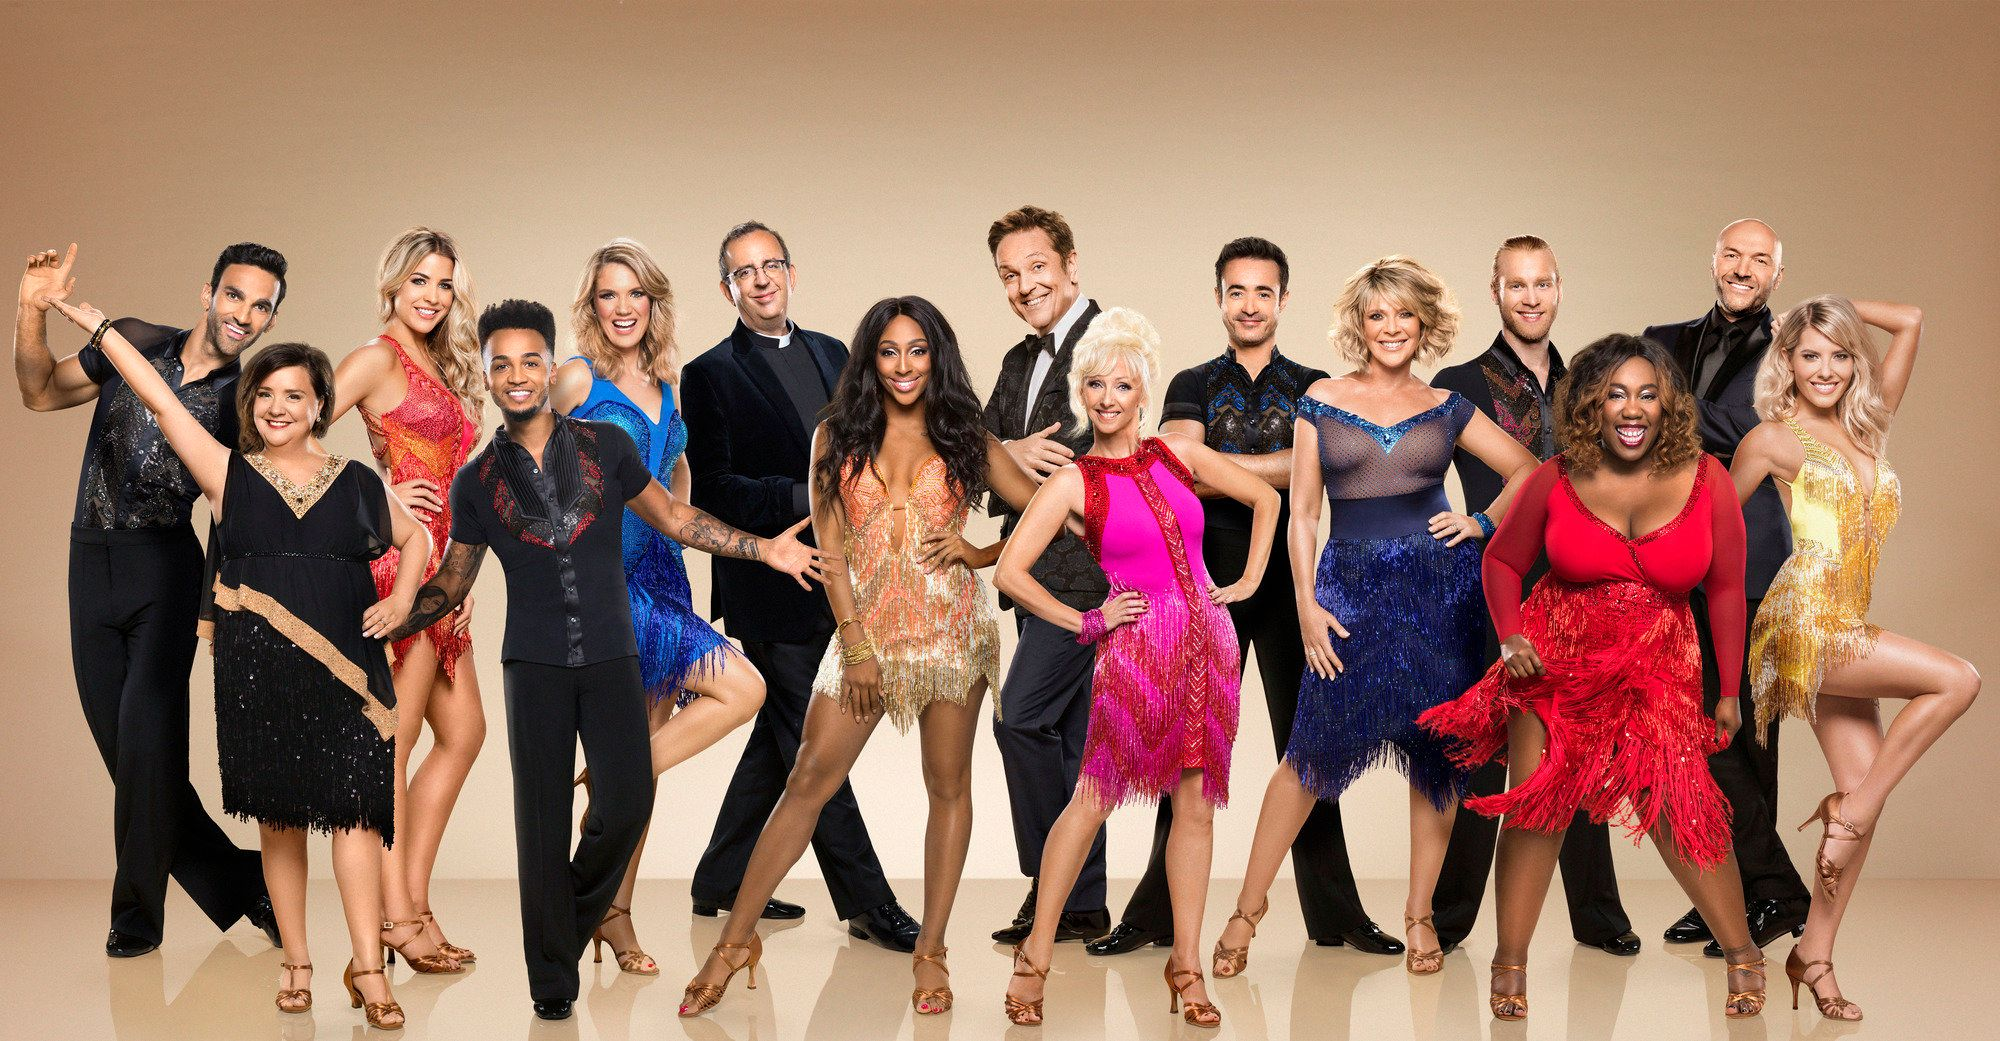 The Songs And Dances For The Second 'Strictly Come Dancing' Live Show Have Been